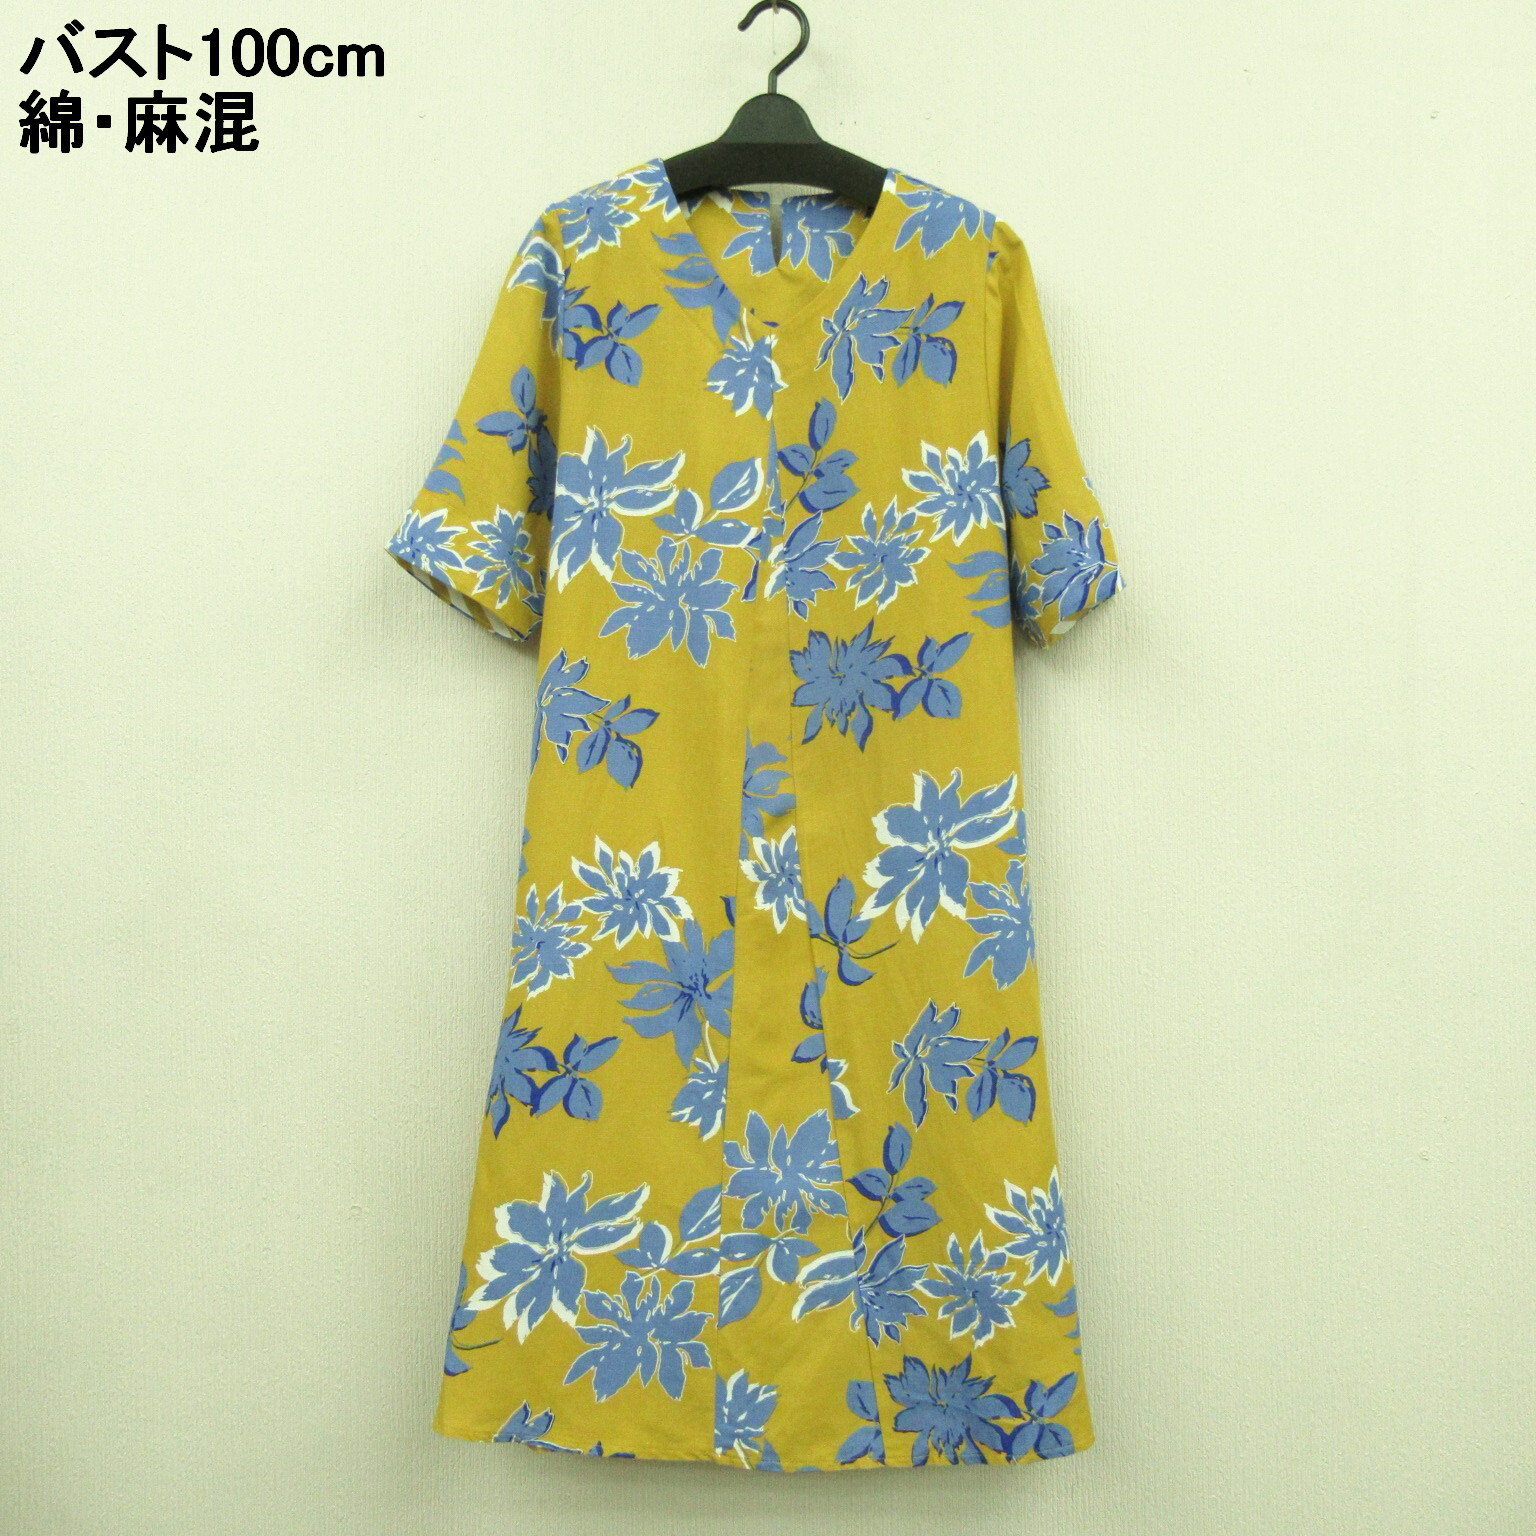 Cotton Hemp Floral Pattern Switching Tunic One Piece Dress Import Japanese Products At Wholesale Prices Super Delivery